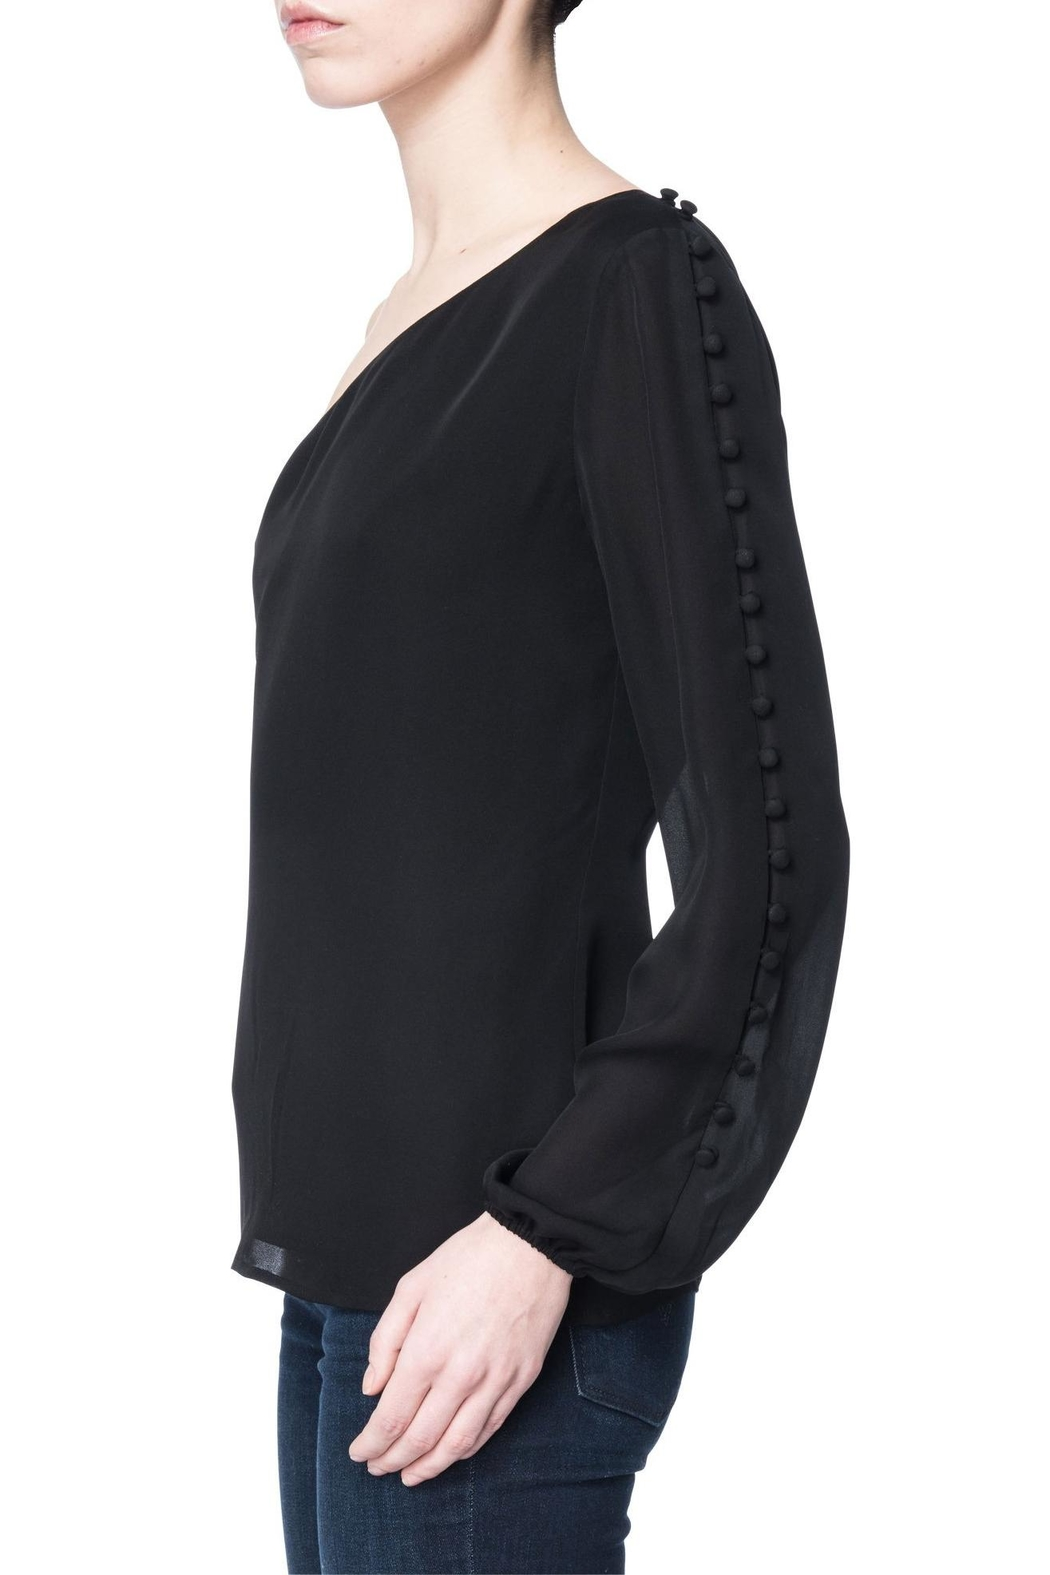 Cami NYC One Shoulder Blouse - Side Cropped Image